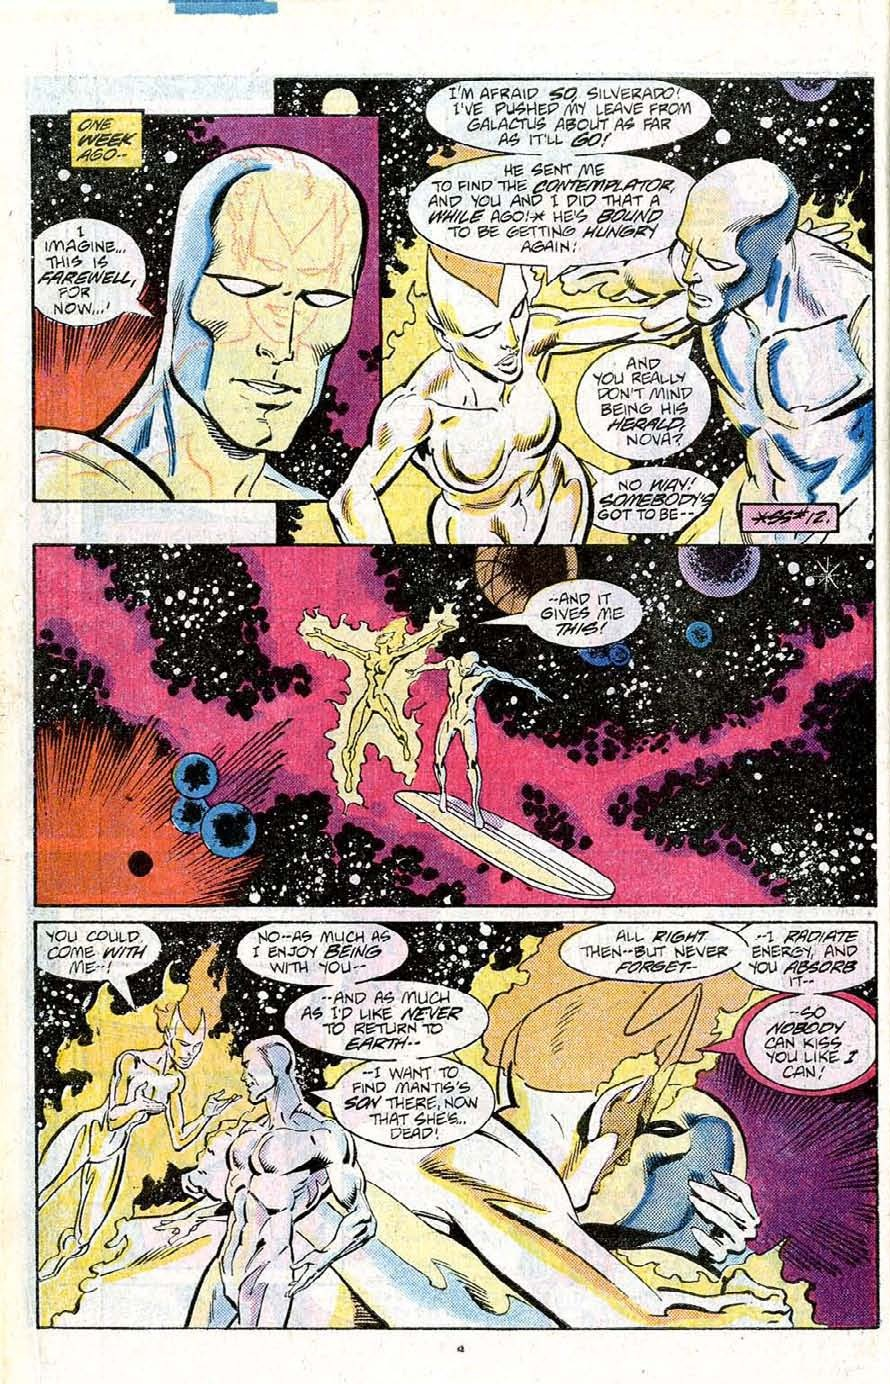 Silver Surfer Annual (1988) #1 pg.4, penciled by Joe Staton & inked by Joe Rubinstein.